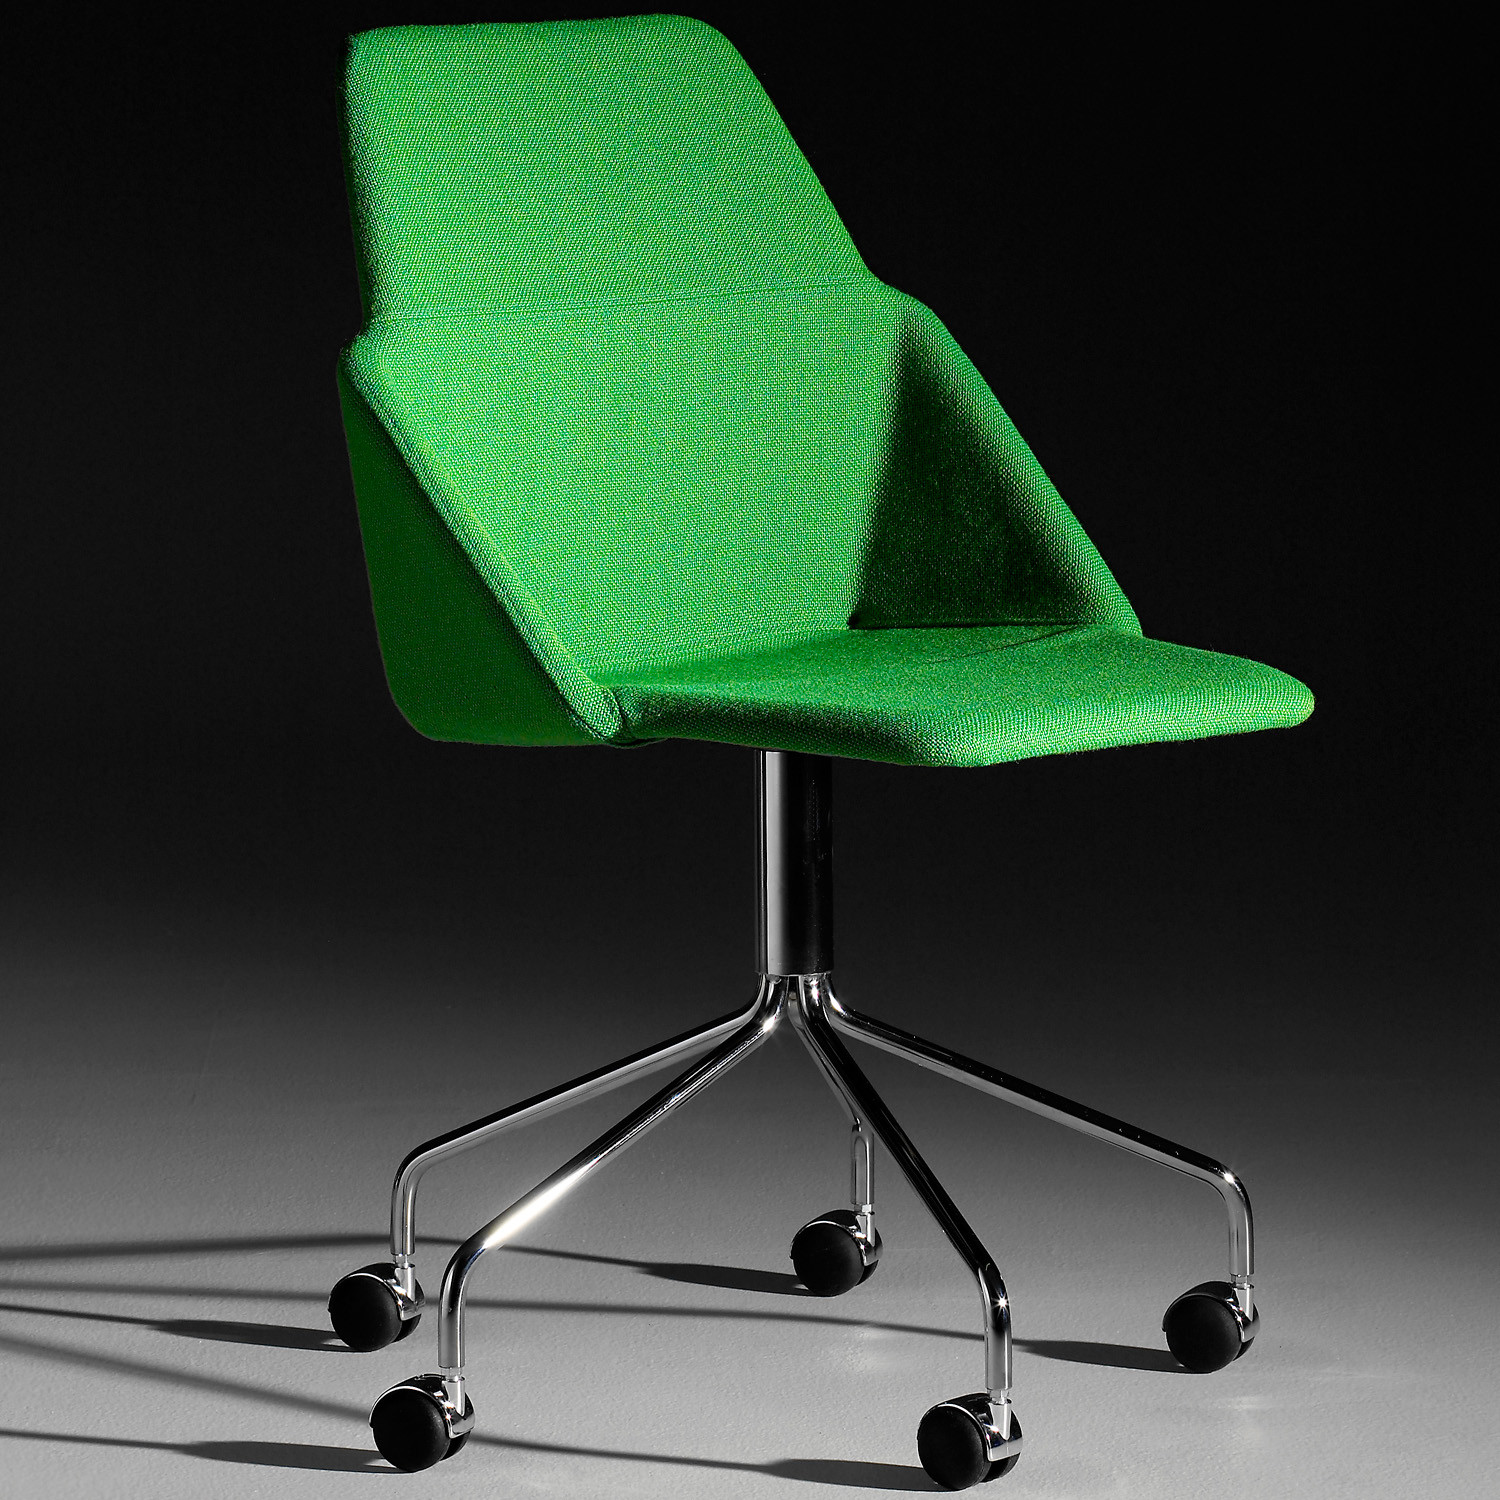 Canti Visitor's Chair by Offecct